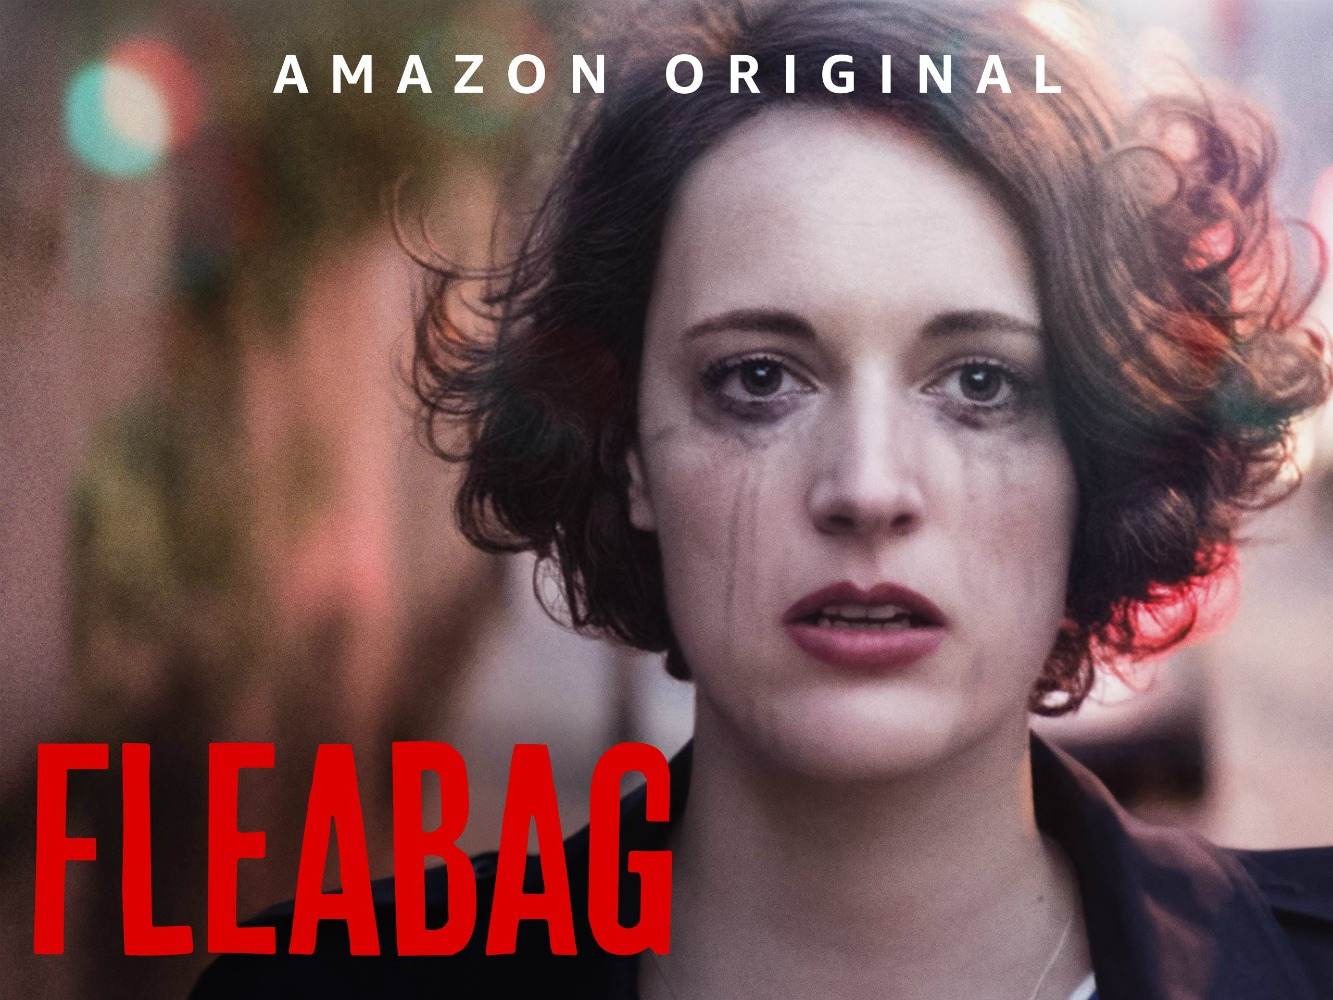 Must watch Amazon Prime Fleabag